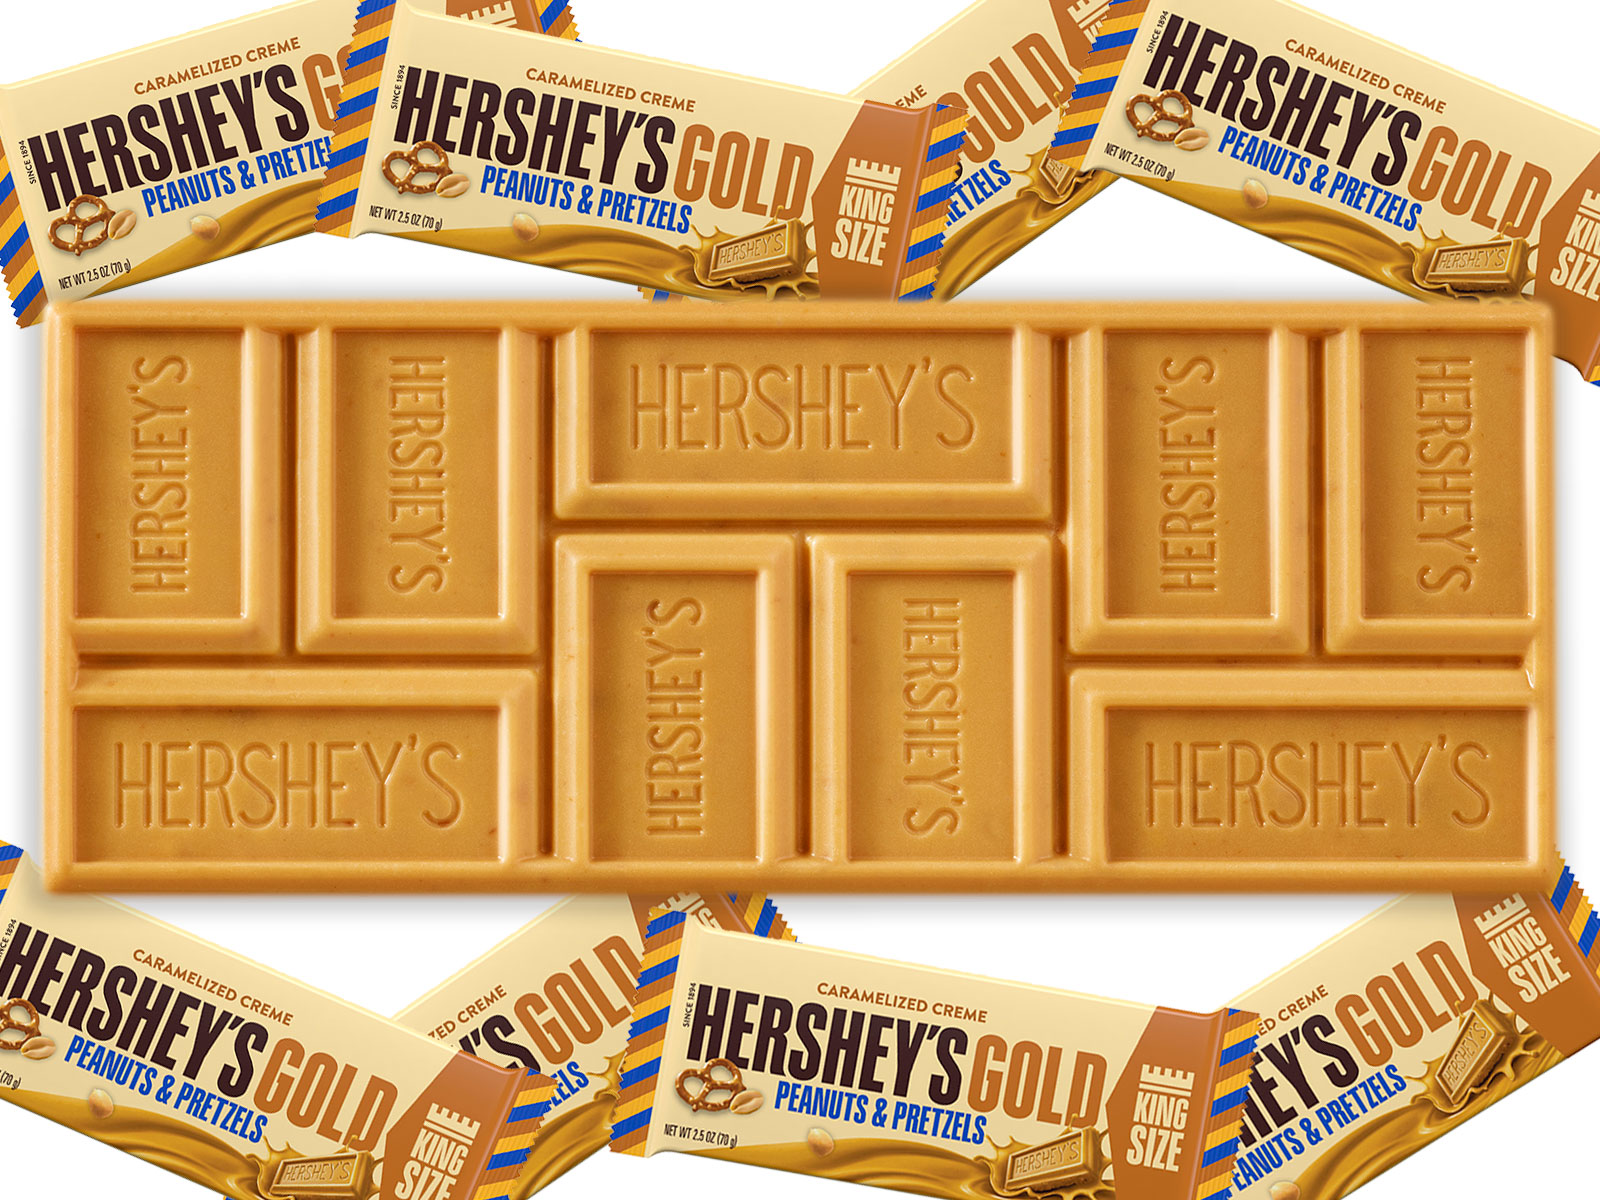 Hershey's Debuts Its First 'New' Candy Bar In A Generation